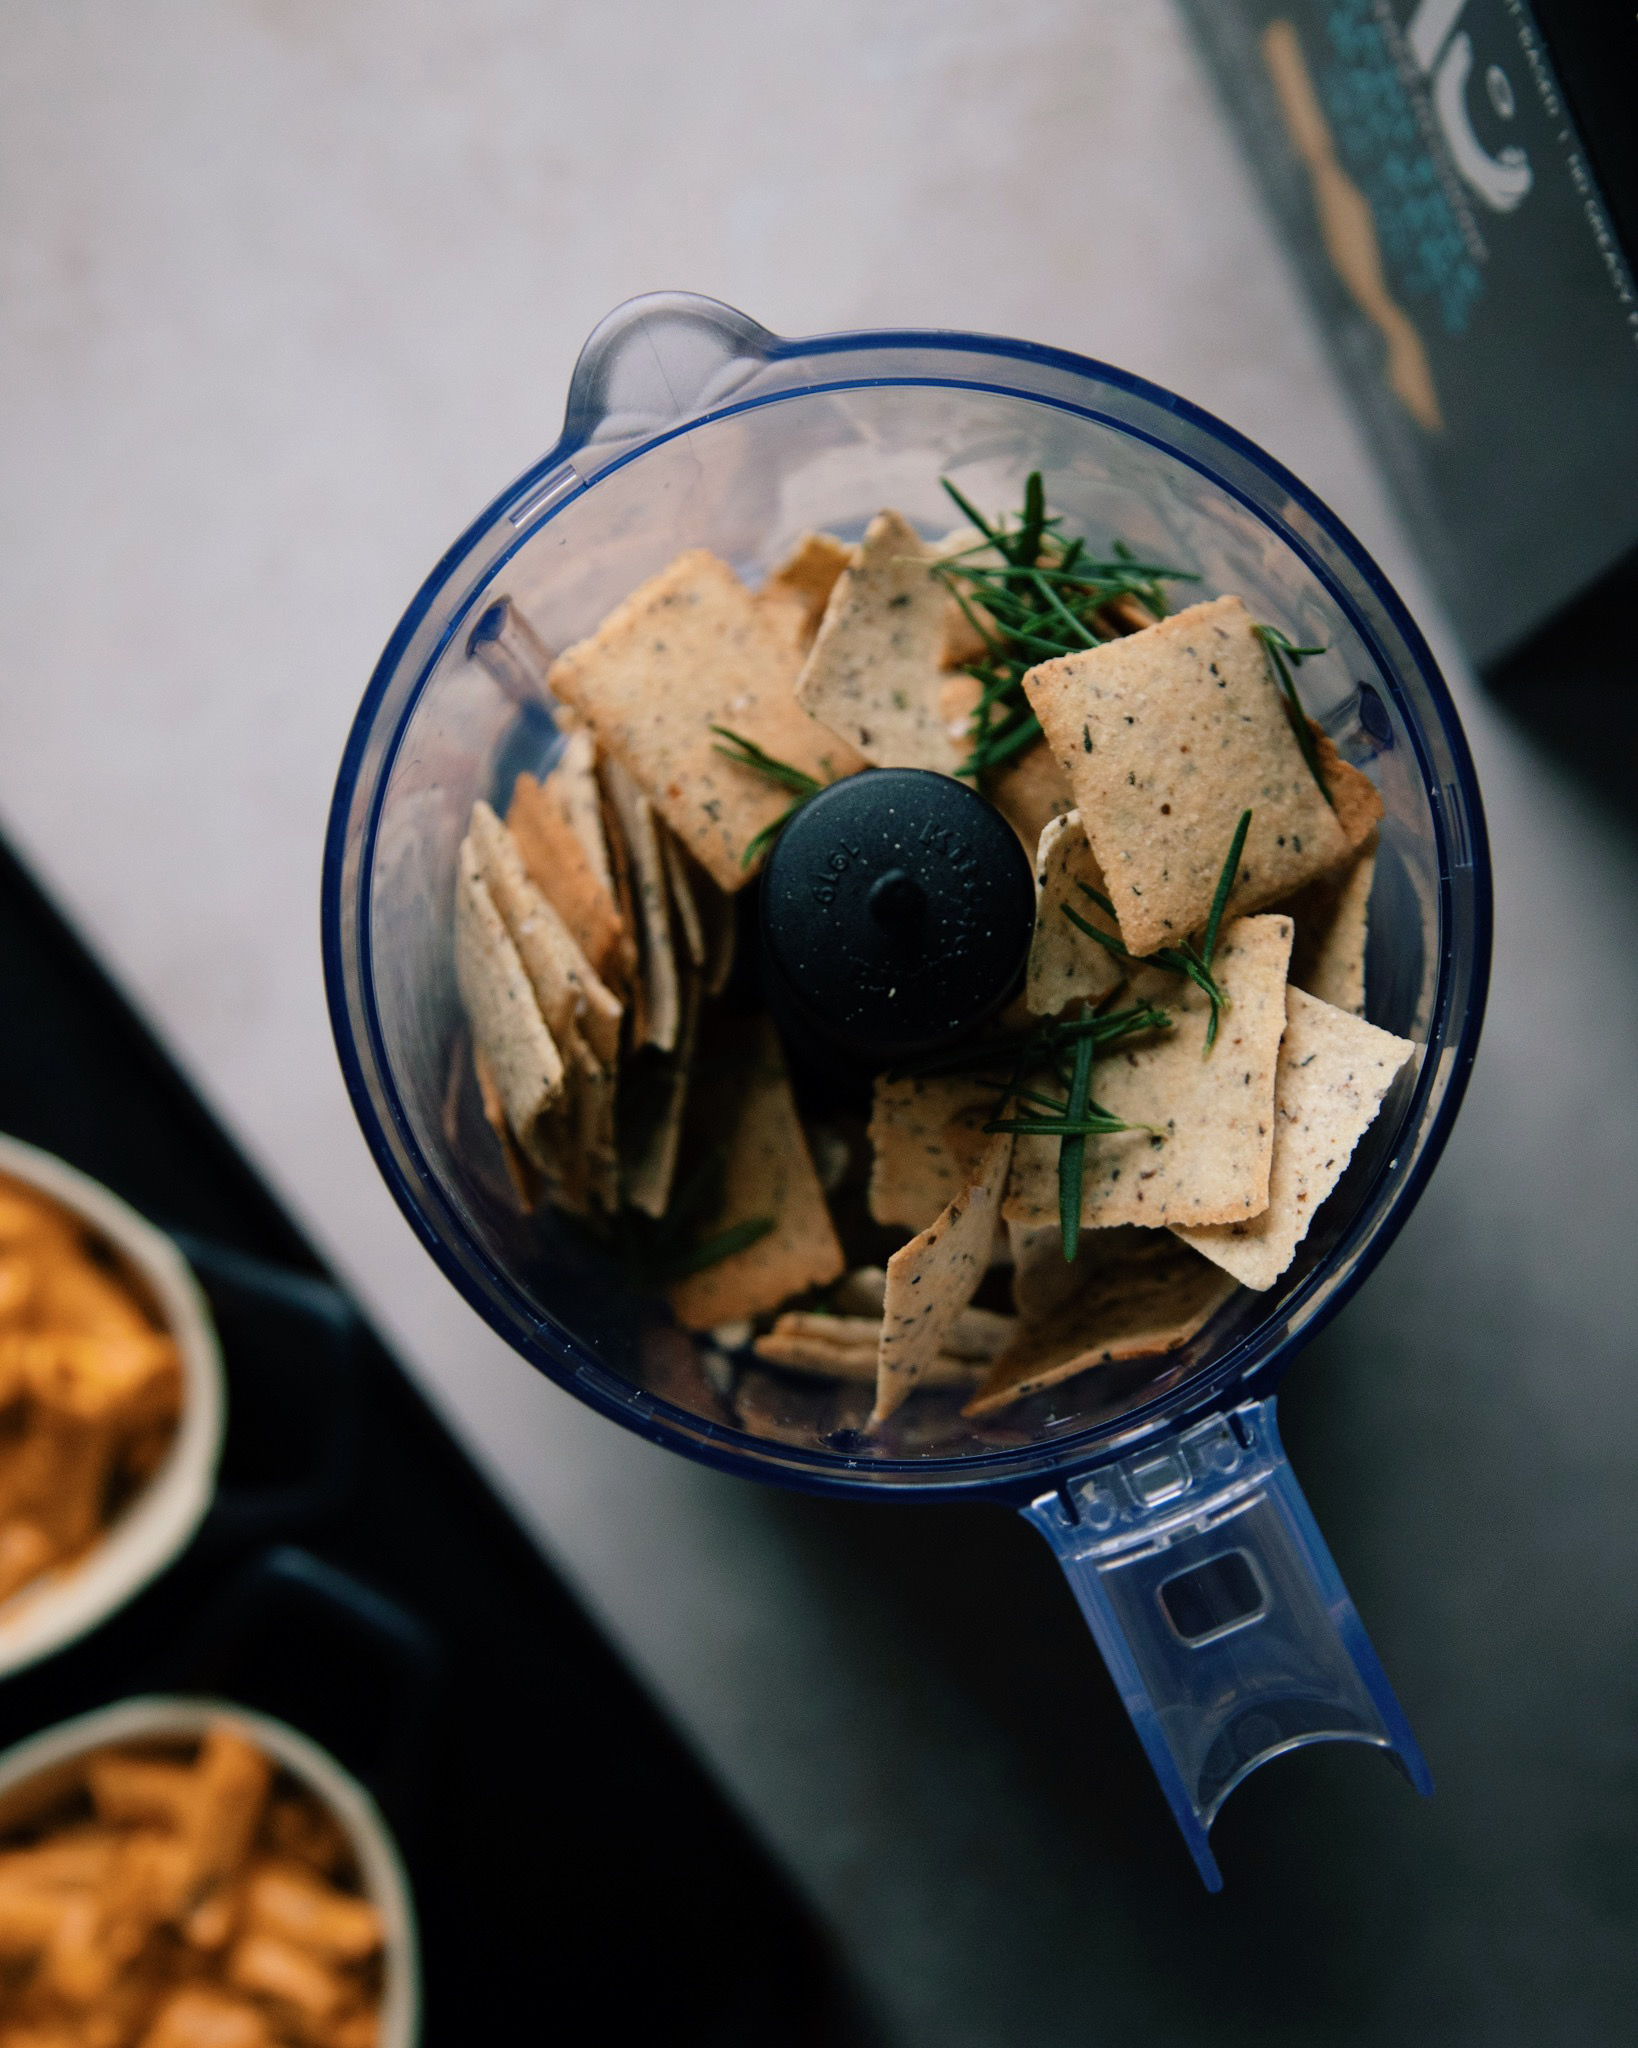 An overhead shot of grain-free crackers and rosemary in a mini food processor on a grey background.